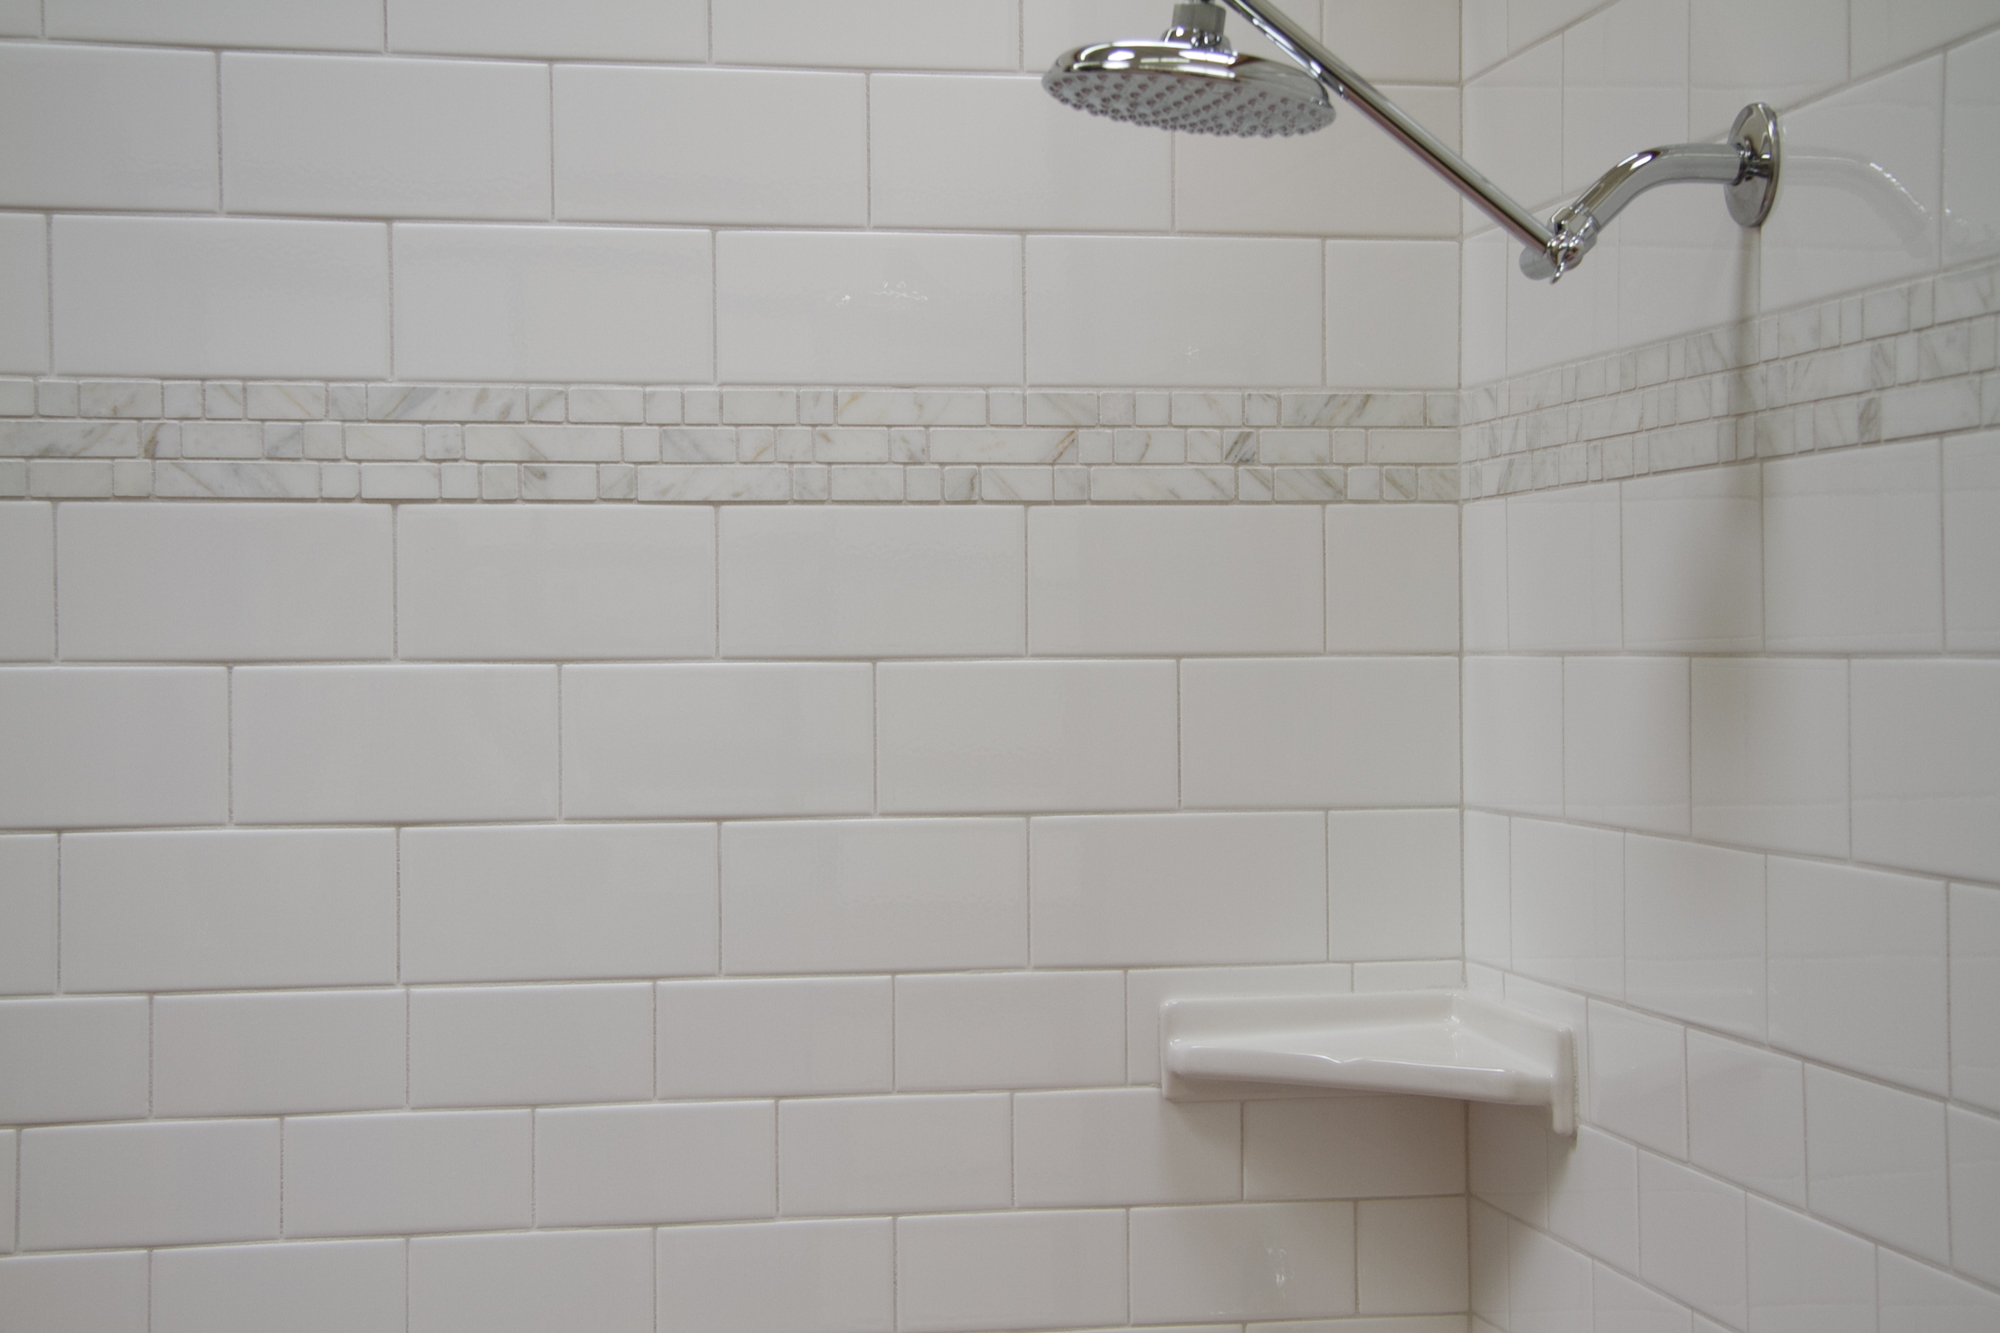 Comfortable 1200 X 600 Floor Tiles Thick 12X12 Ceiling Tiles Asbestos Square 12X24 Ceramic Tile Patterns 2X4 Acoustical Ceiling Tiles Young 3 By 6 Subway Tile Coloured6 X 6 Tiles Ceramic Manhattan   Wall Tile